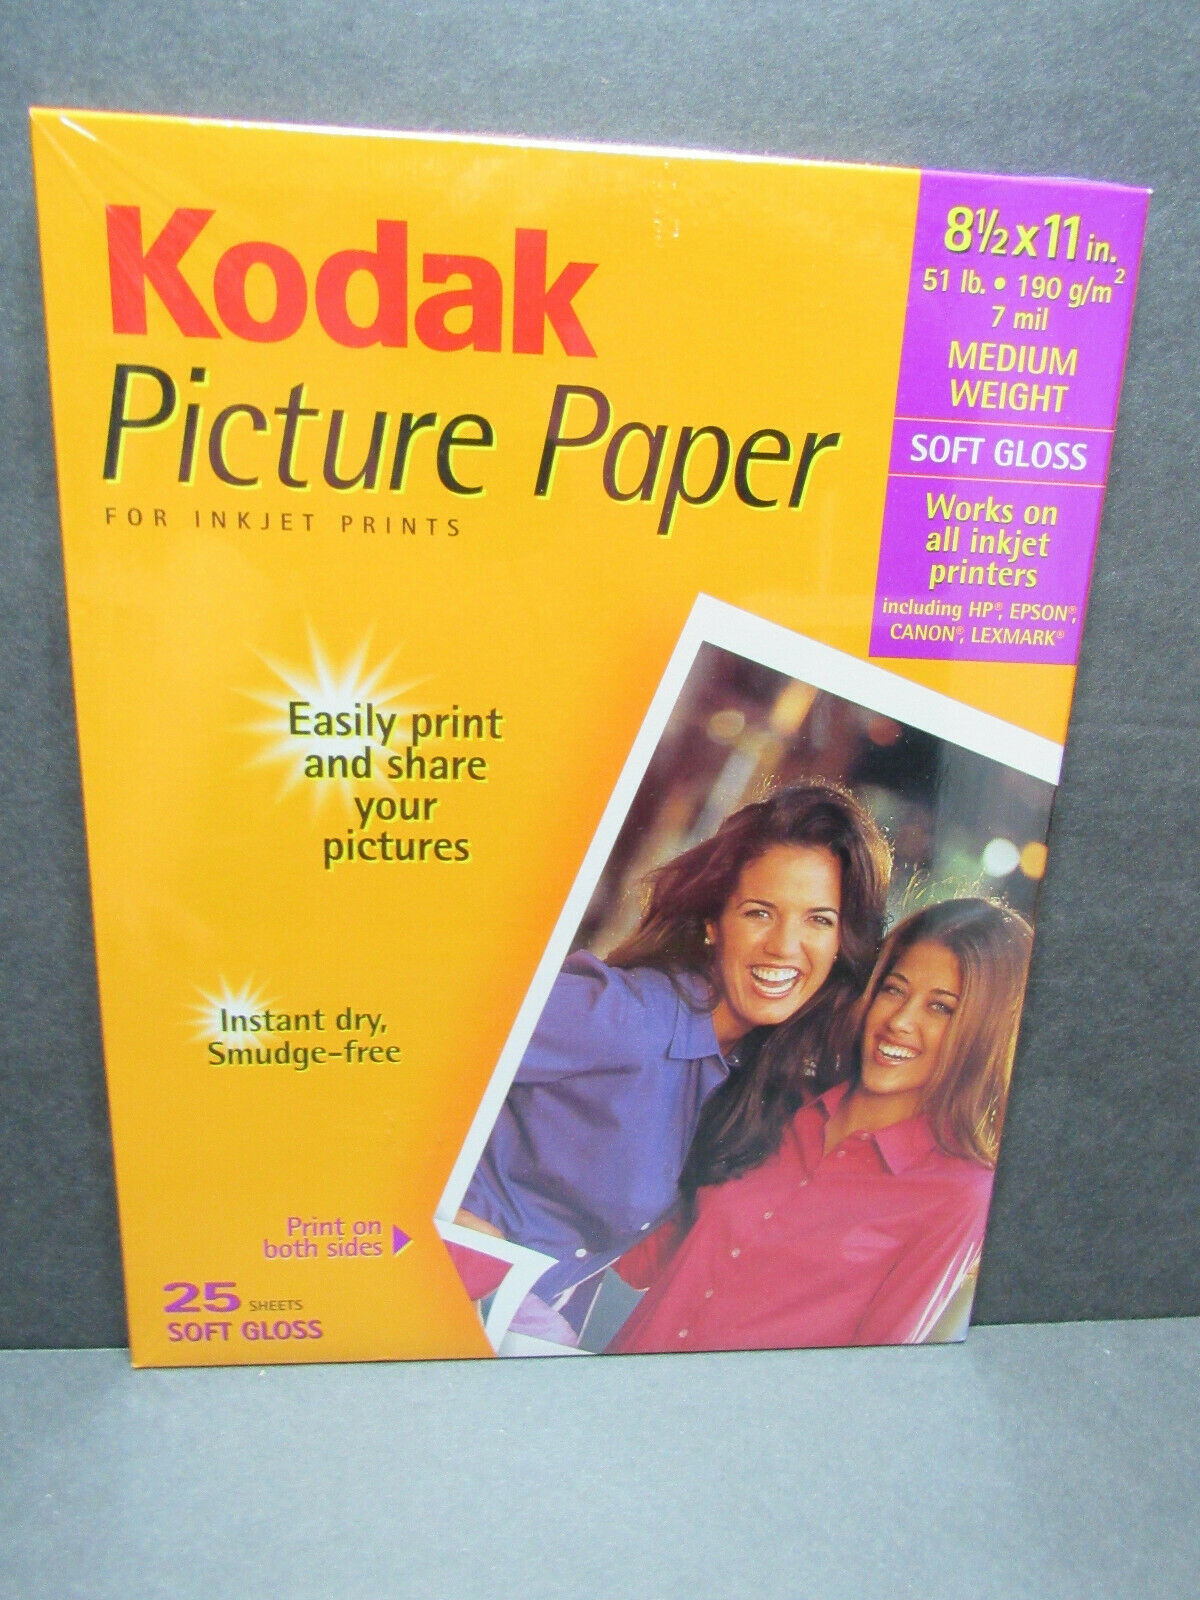 Lot of 2 Kodak picture paper for inkjet Med Weight 25 sheets (50 ct) soft gloss - $12.86